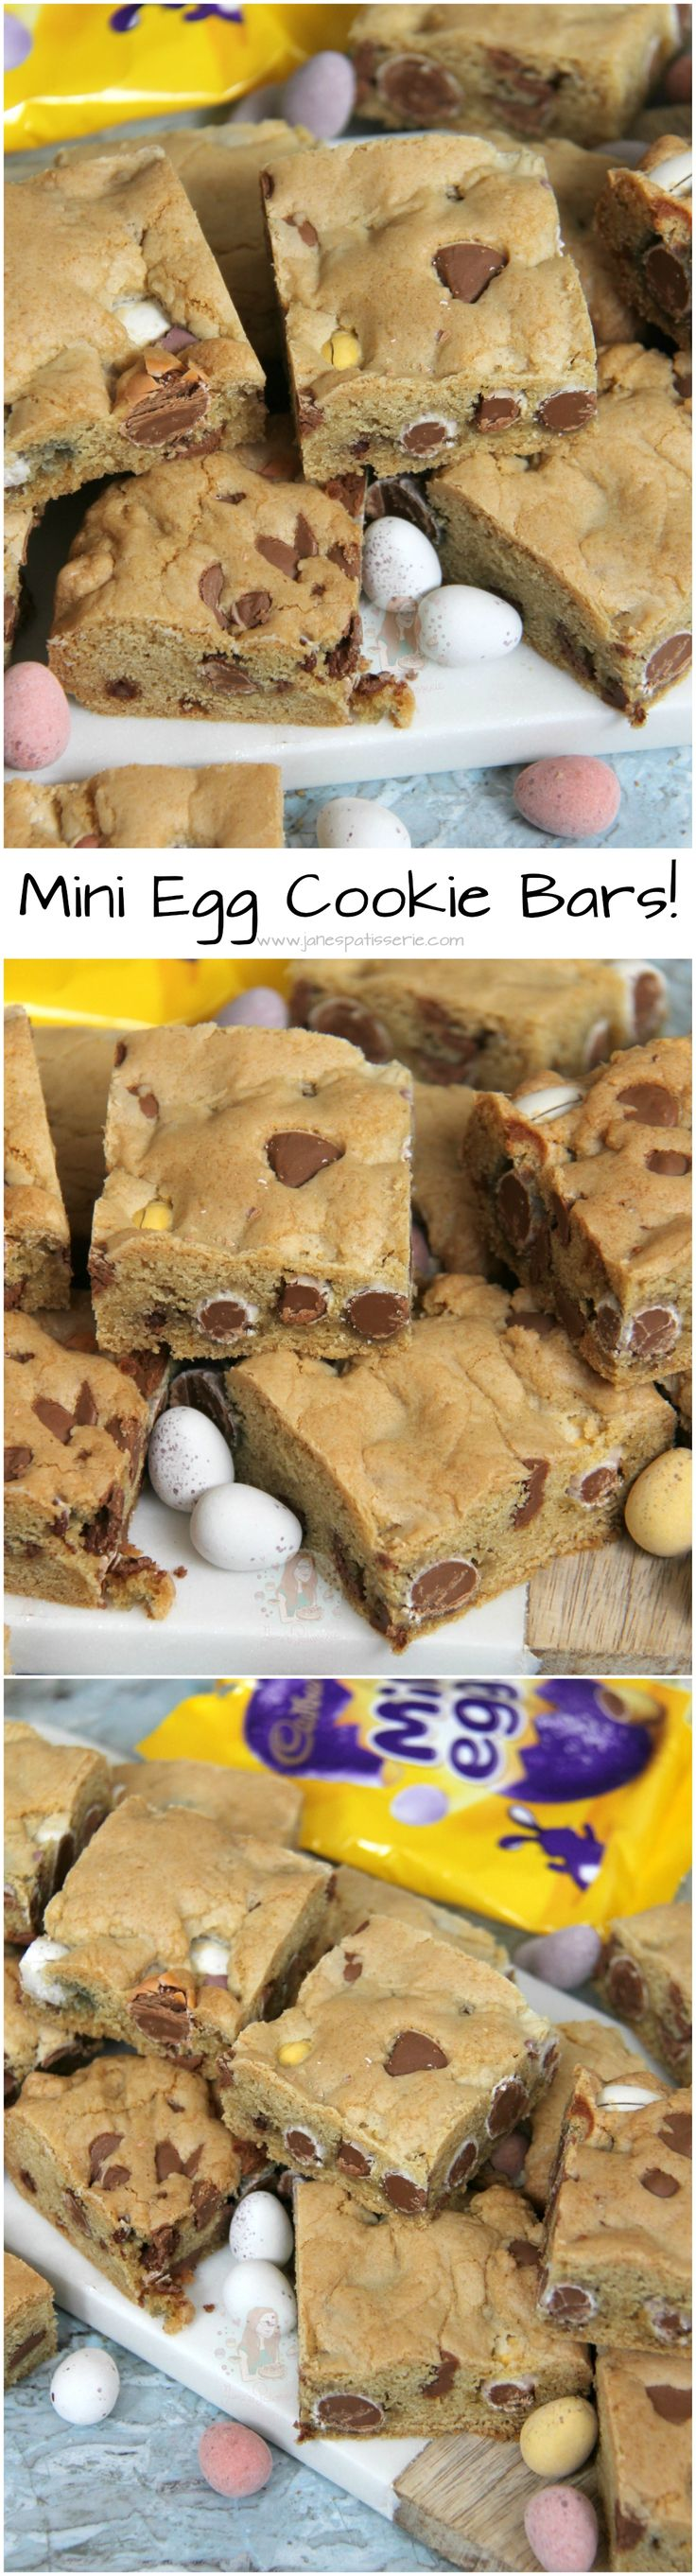 Mini Egg Cookie Bars! ❤️ A Yummy Mini Egg & Chocolate Chip Cookie Traybake perfect for Easter.. Mini Egg Cookie Bars are my new Favourite!